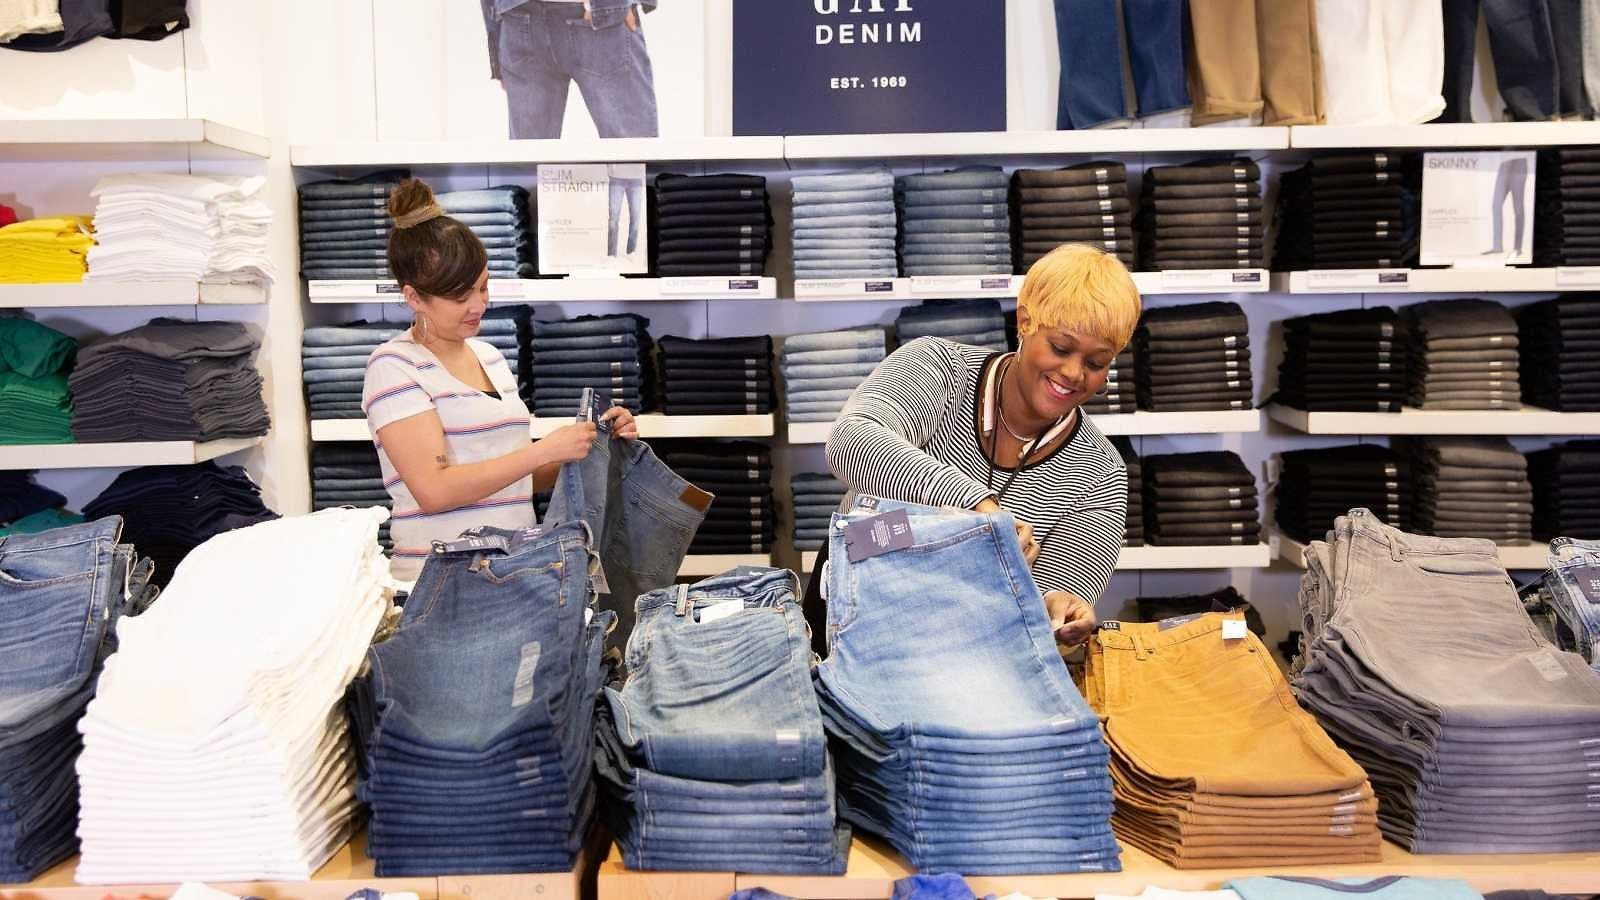 Gap Inc. Is Exiting Malls: 220 Gap Stores, 130 Banana Republic Stores to Shutter By 2024.